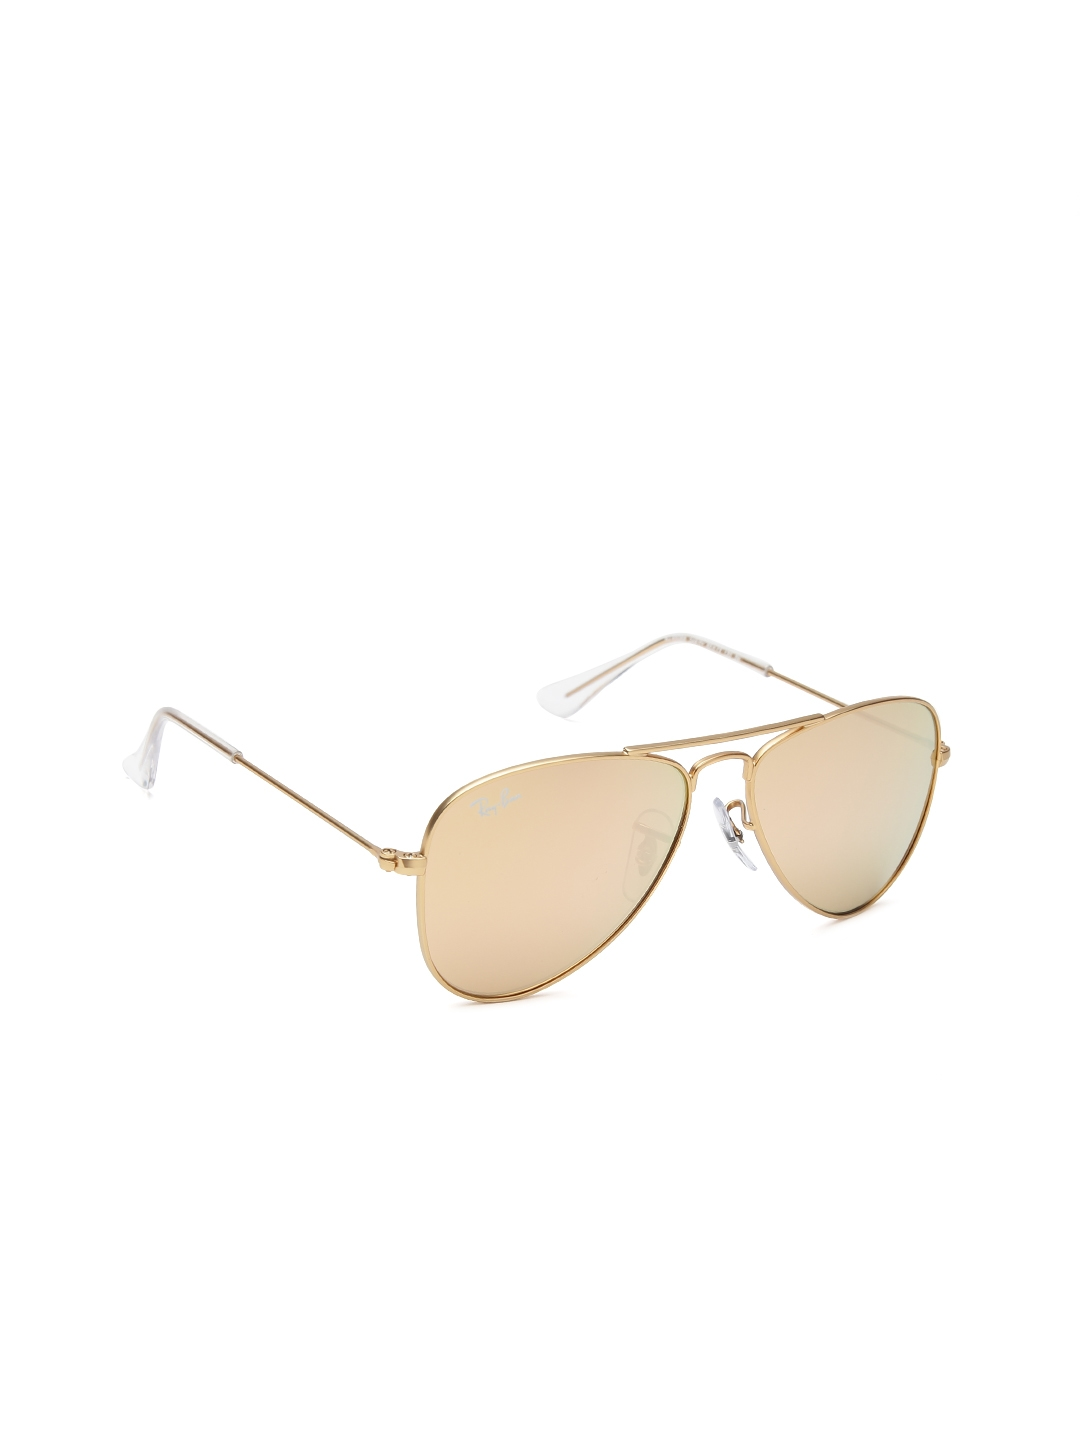 ray ban oval sunglasses rs. 3990